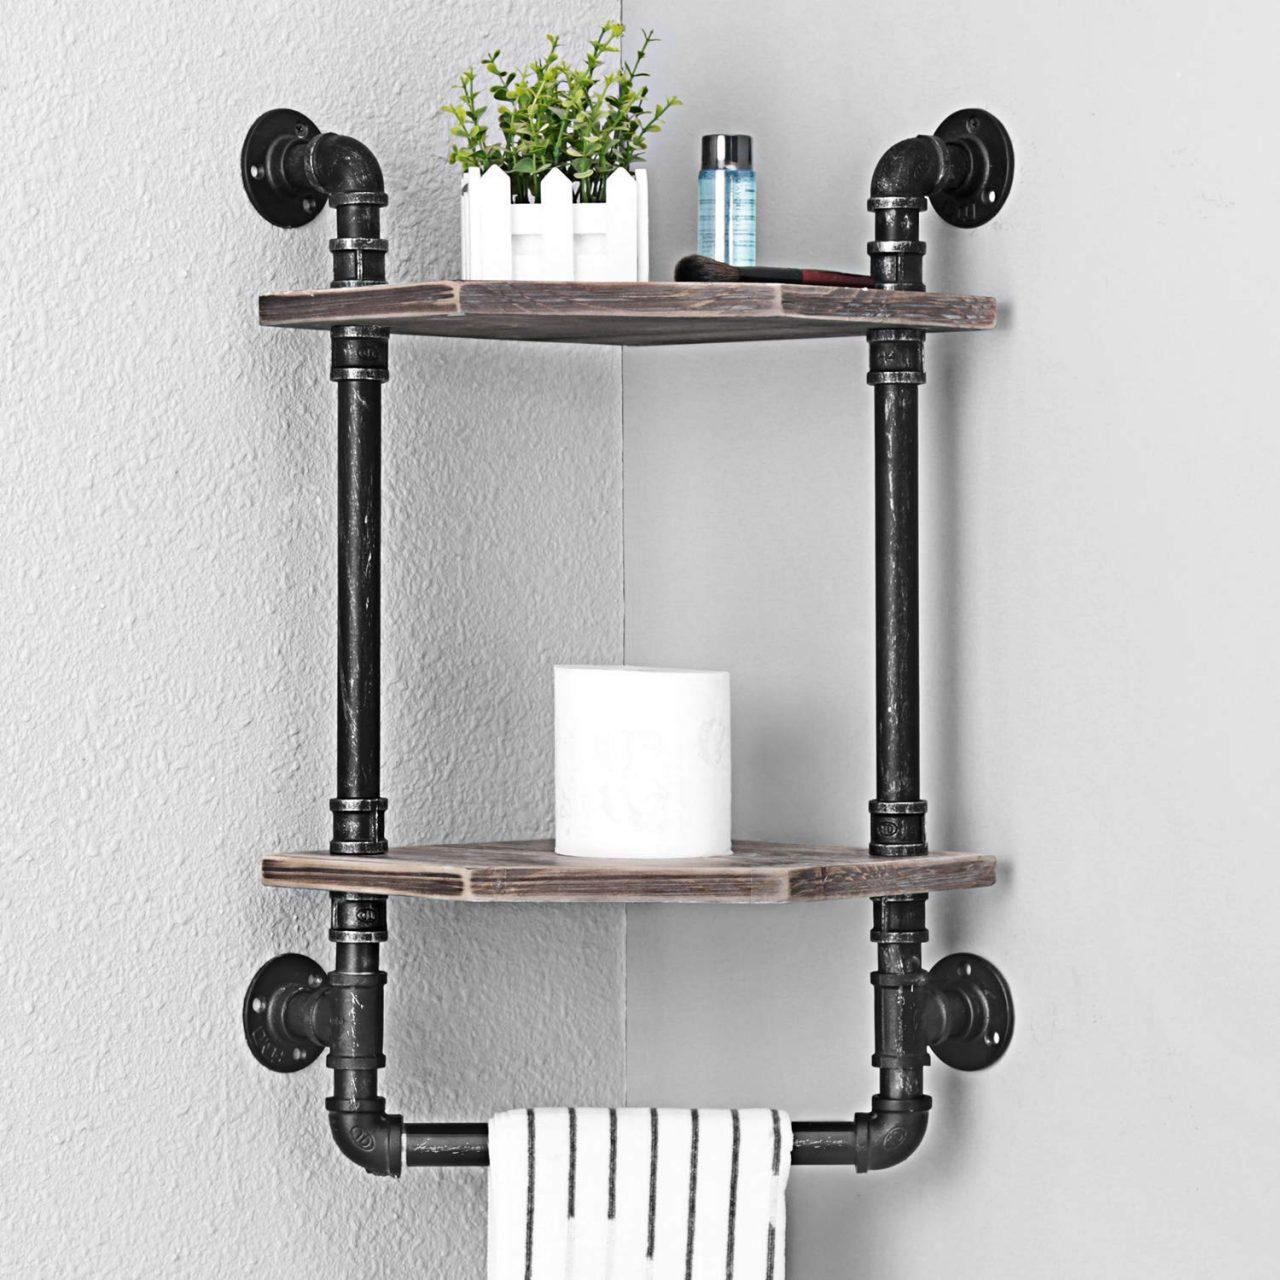 719OUWP1D0L. AC SL1500 - Best Industrial Shelves with Pipe 2020 [User Rated]